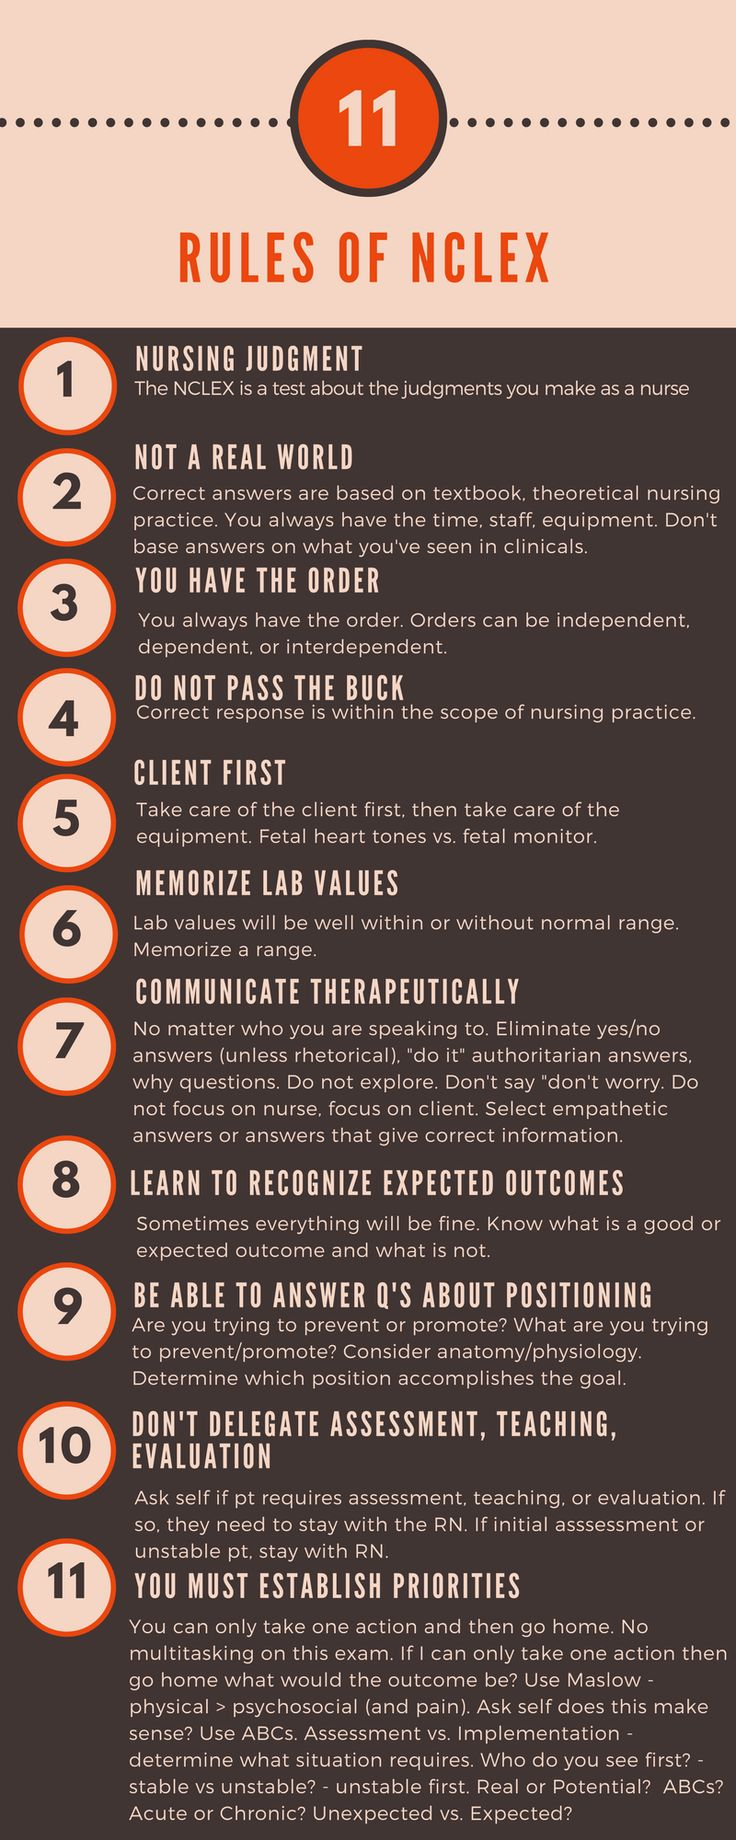 Rules of NCLEX, pic I found on pinterest and thankfully downloaded awhile back!